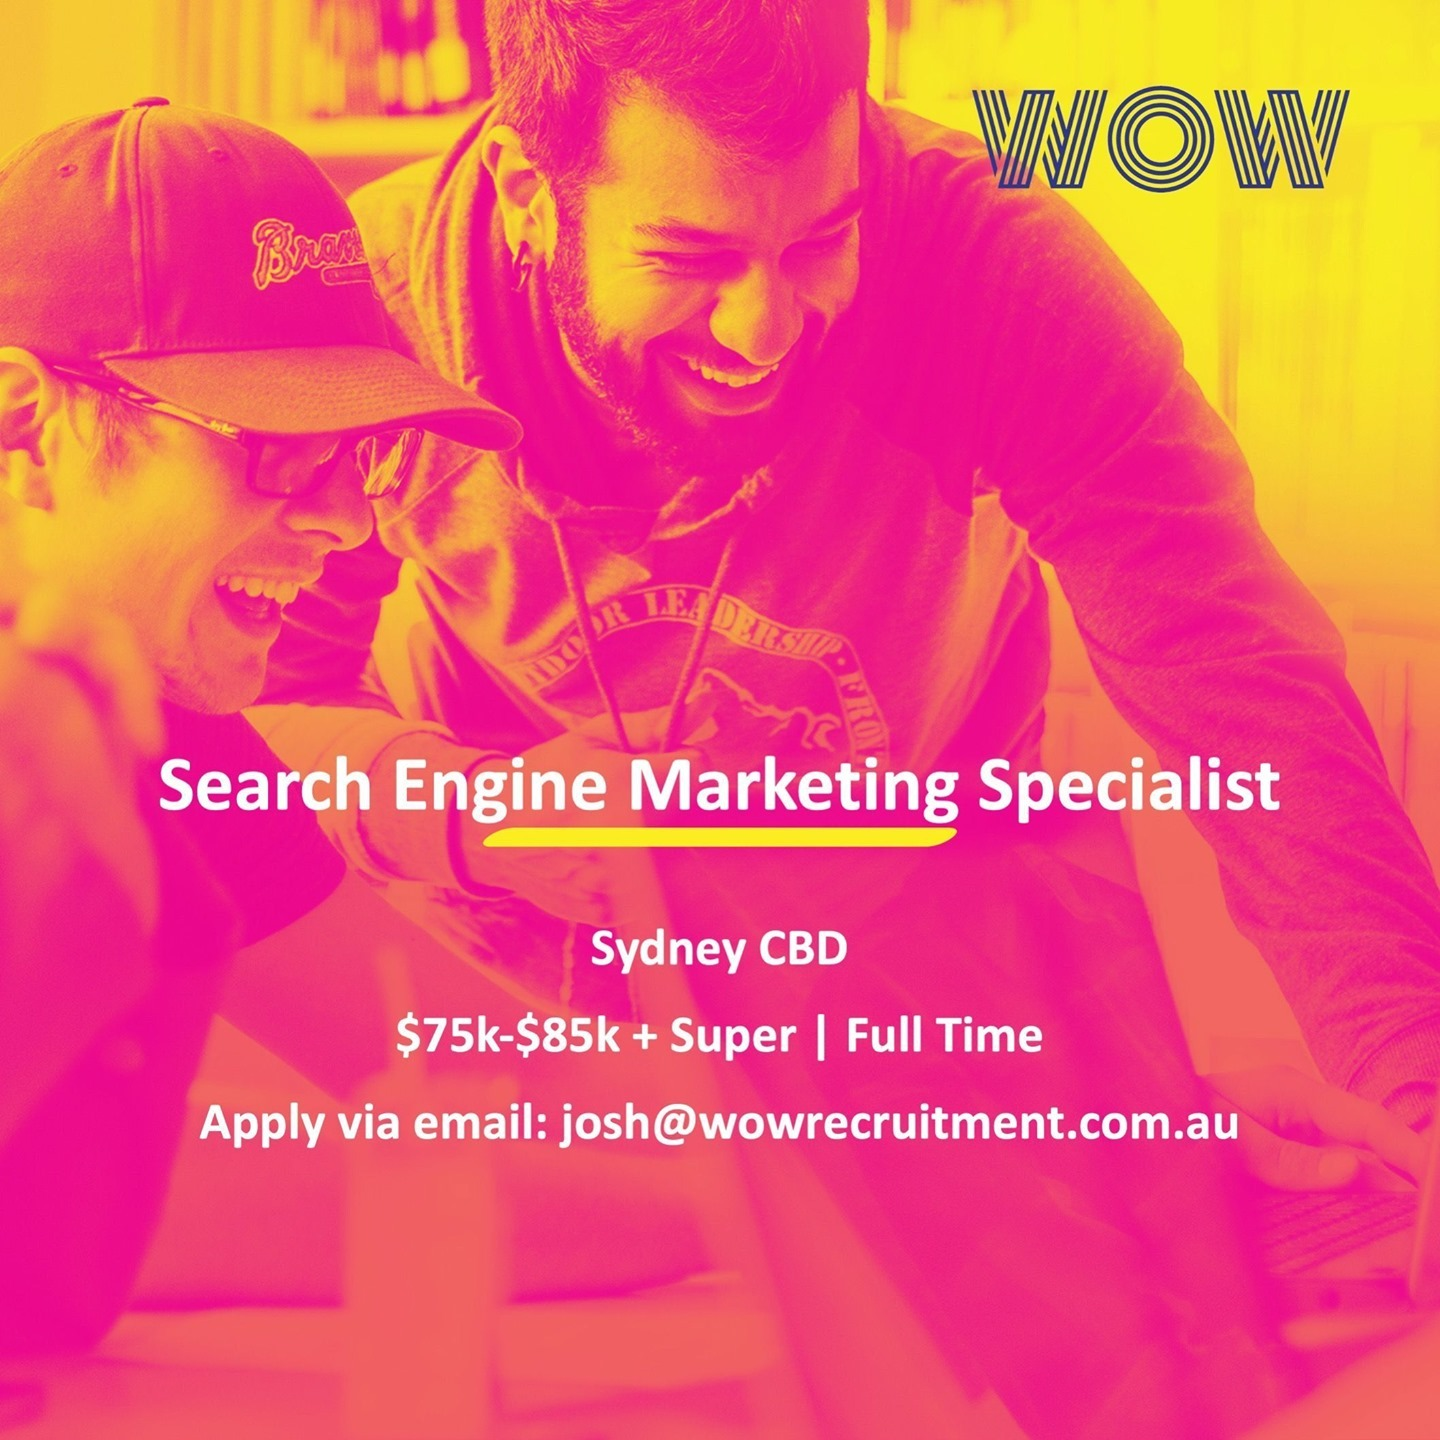 WOW have partnered with a growing Digital Agency that specialise in SEO/SEM & Paid Media based in Sydney CBD. If you're an SEM Specialist looking for your next opportunity, reach out to our marketing recruitment specialist Josh Sharpe via email today! #DoWhatYouLove